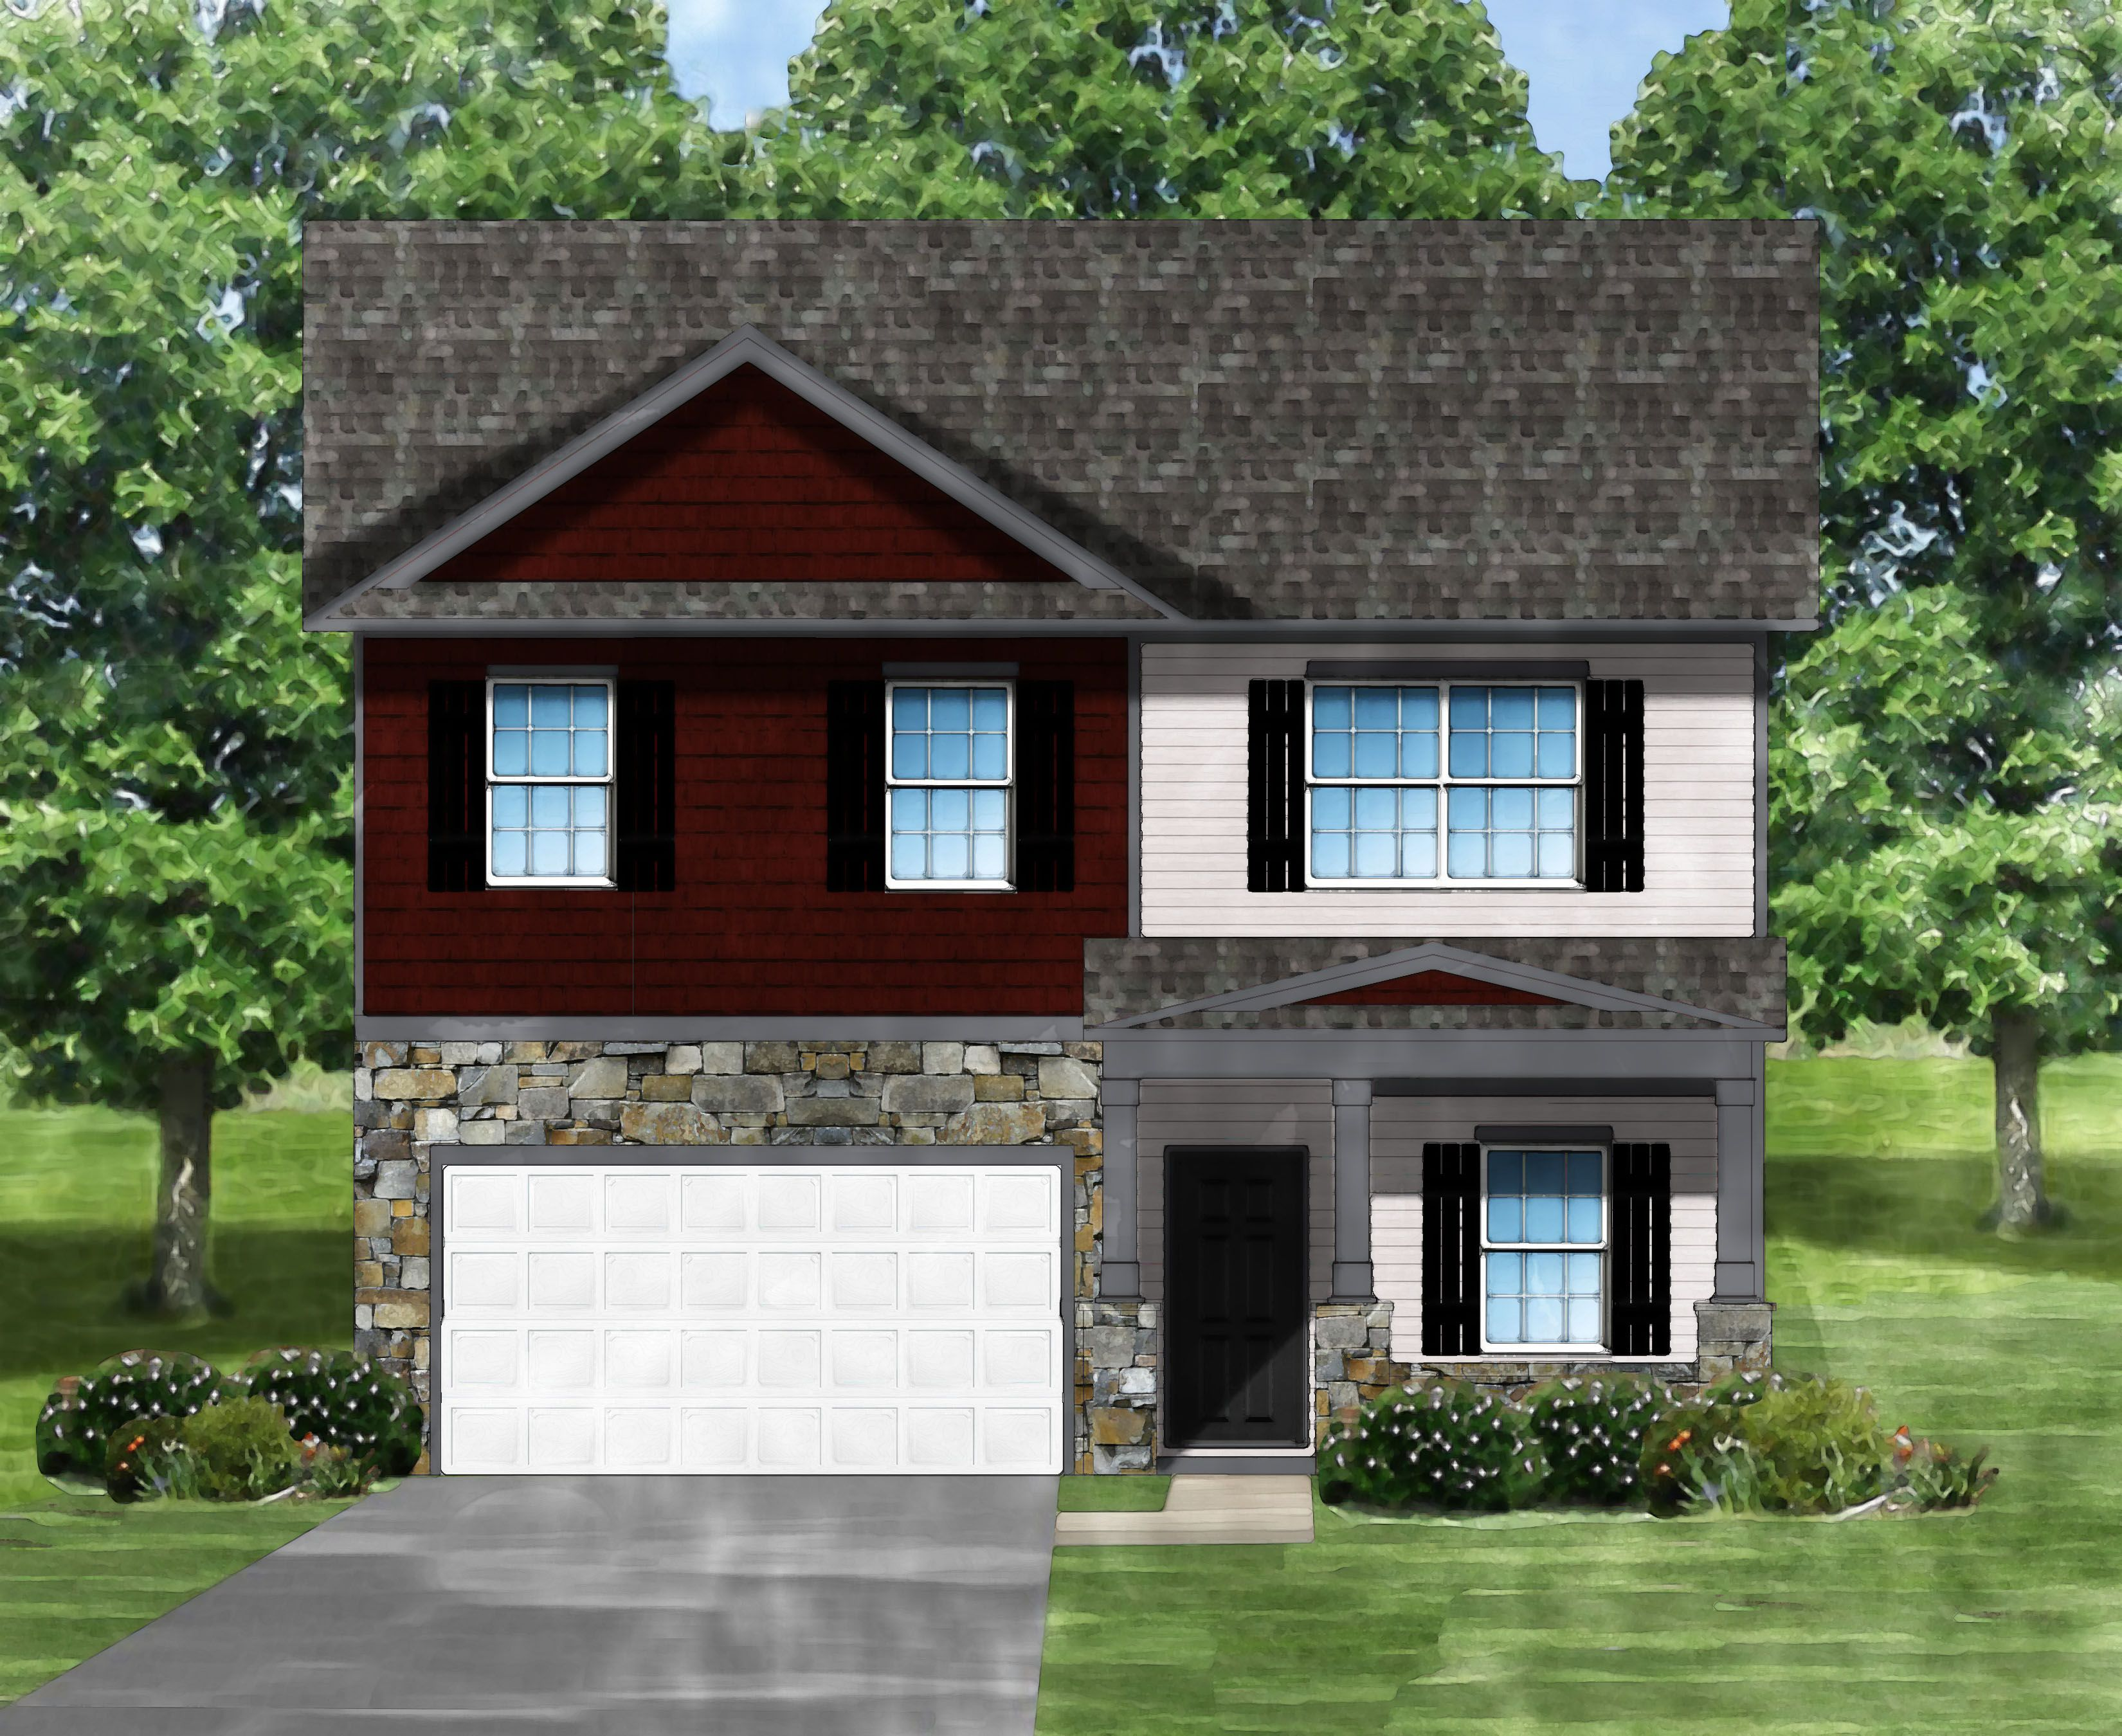 New construction homes and floor plans in greenville sc for House plans greenville sc